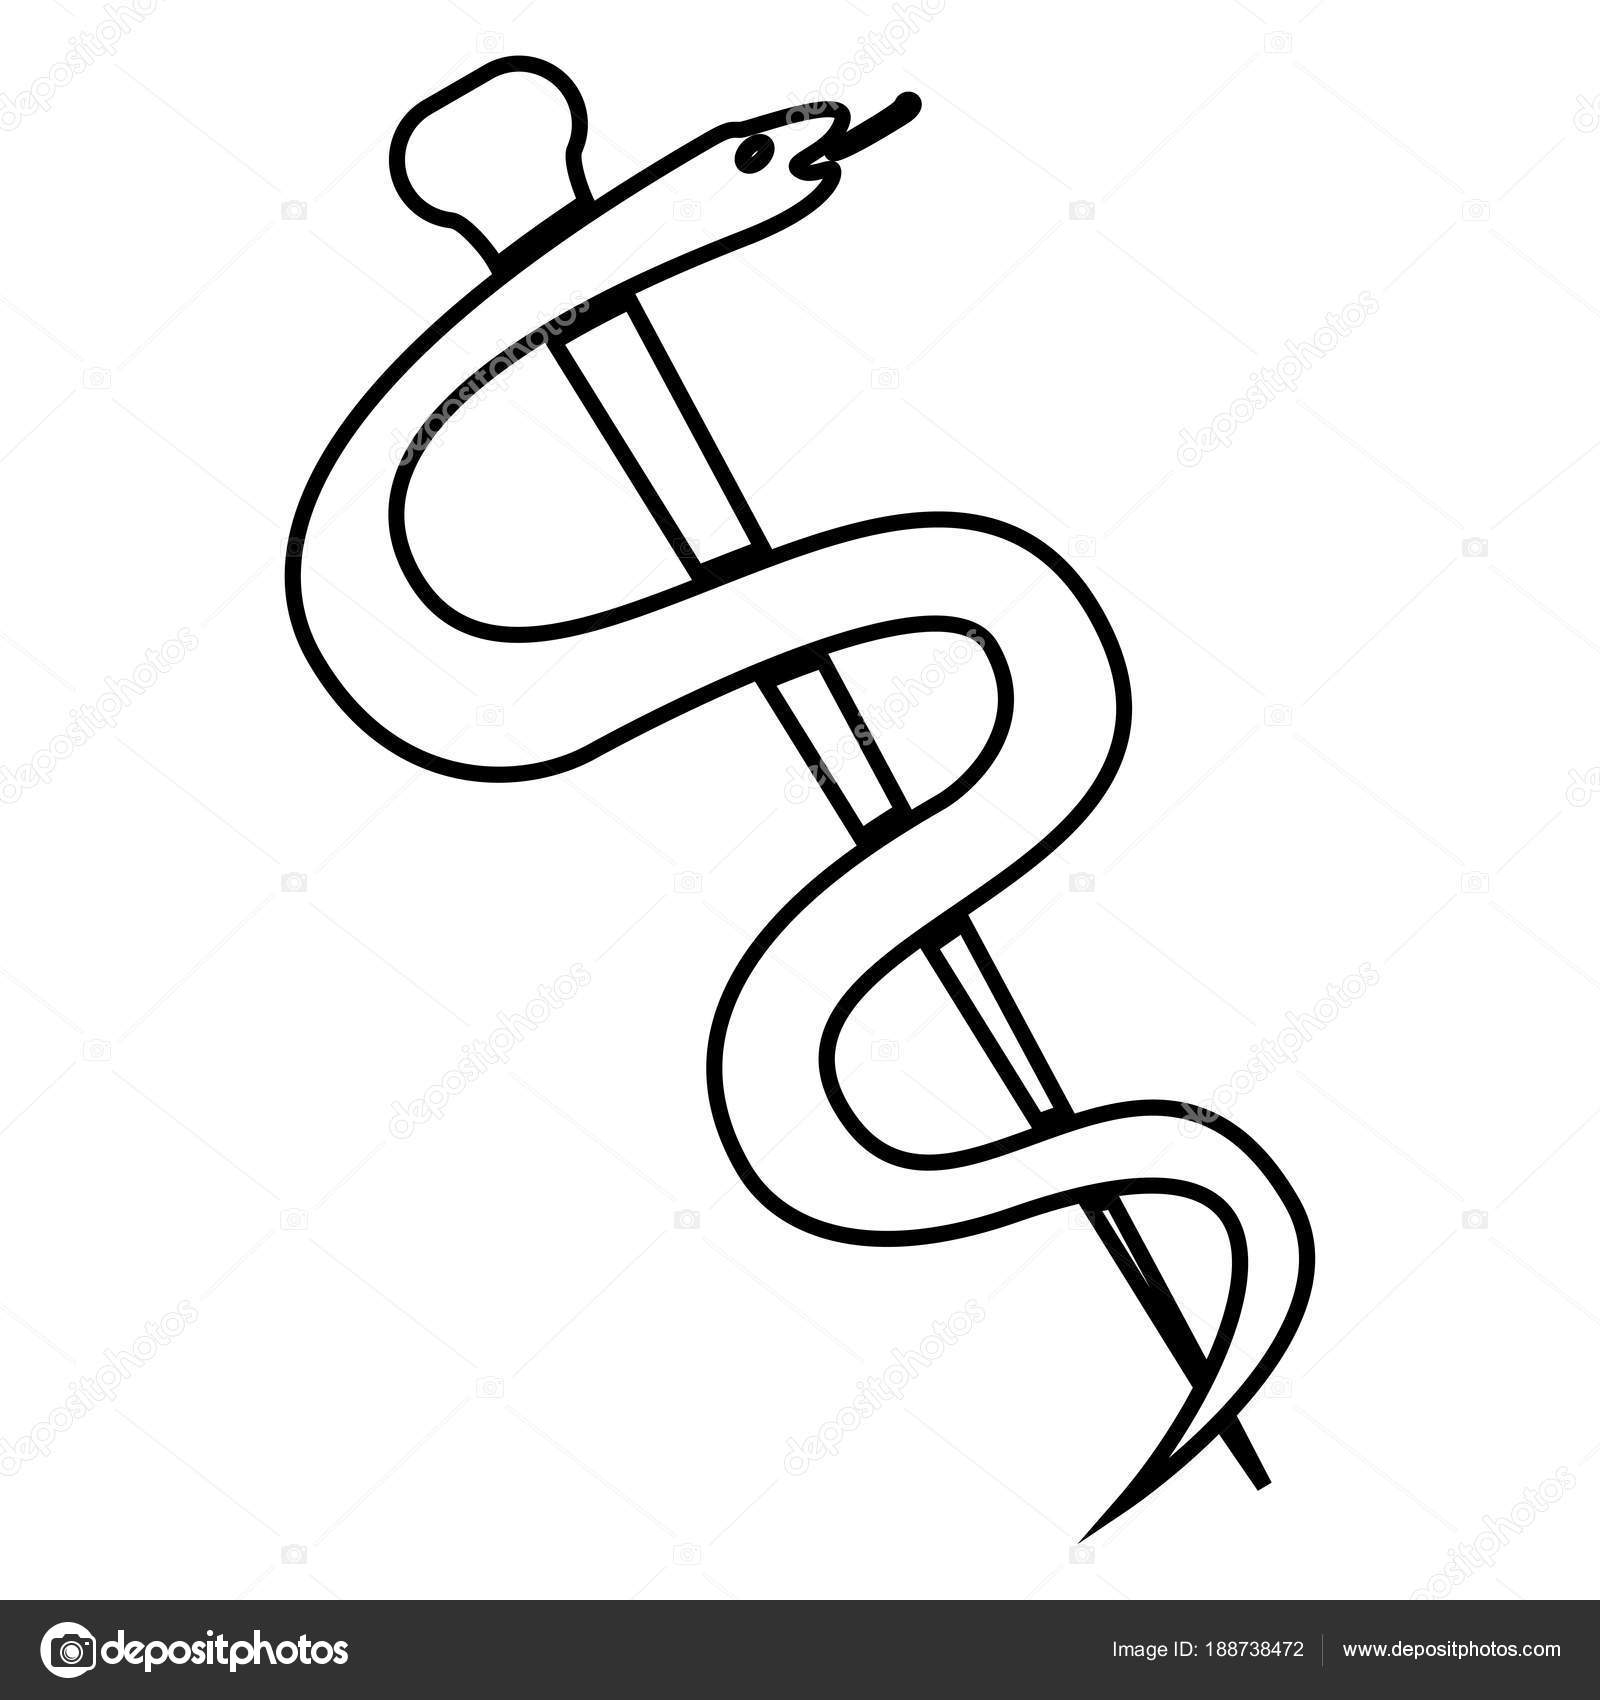 Caduceus Or Staff Of Asclepius Symbol Icon Black Color Illustration